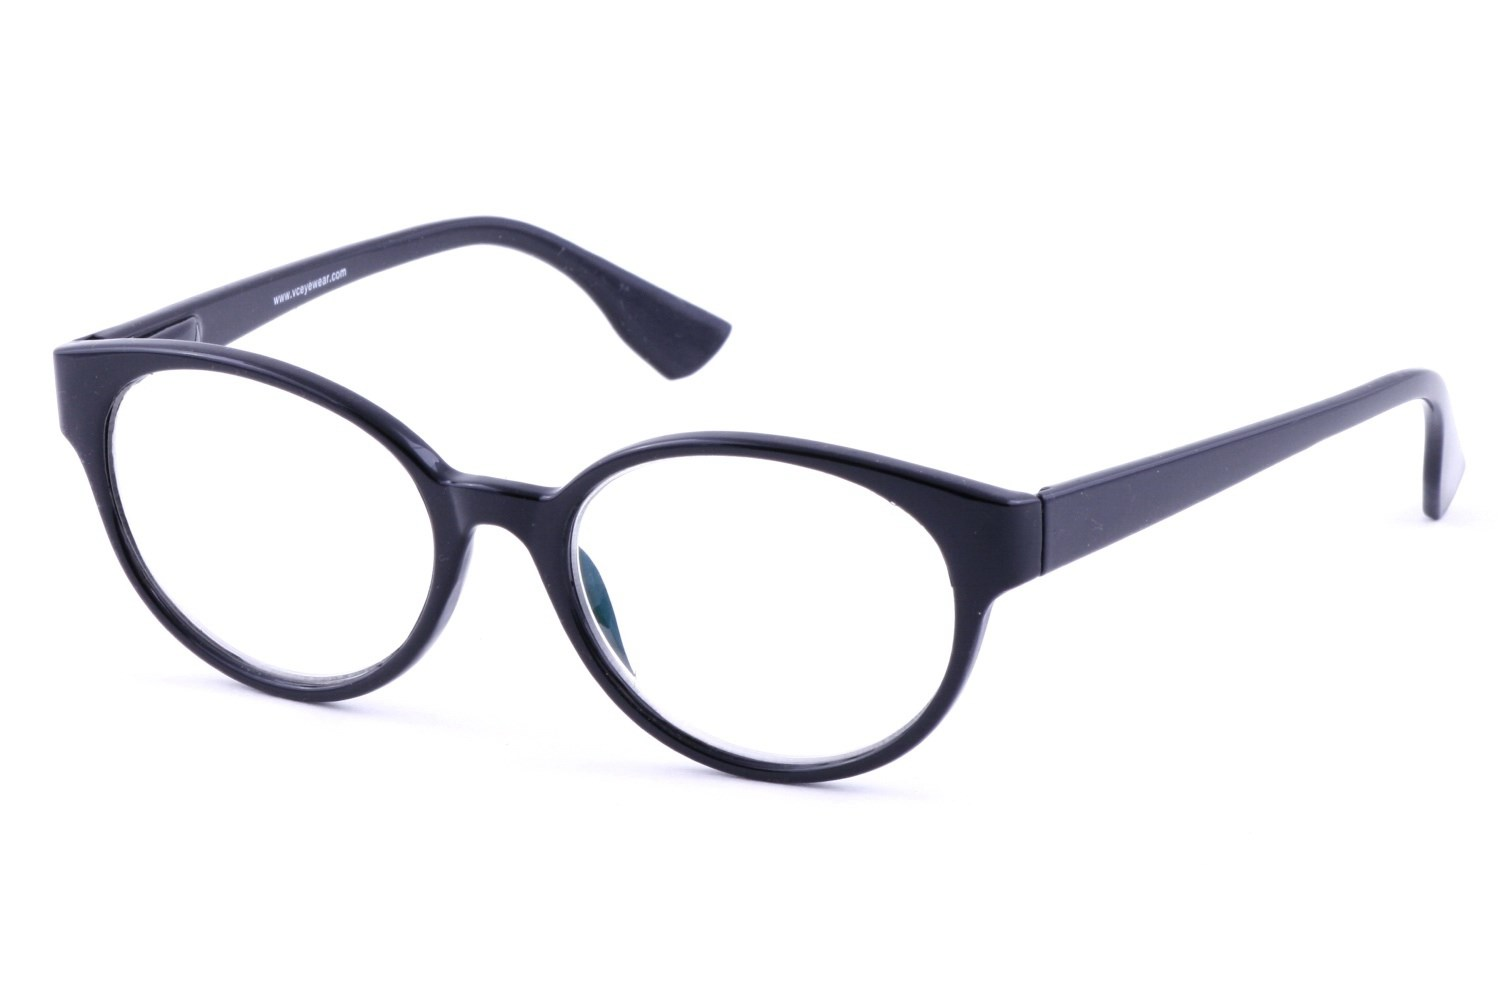 CE109 Full Frame Modern Reading Glasses AC19131